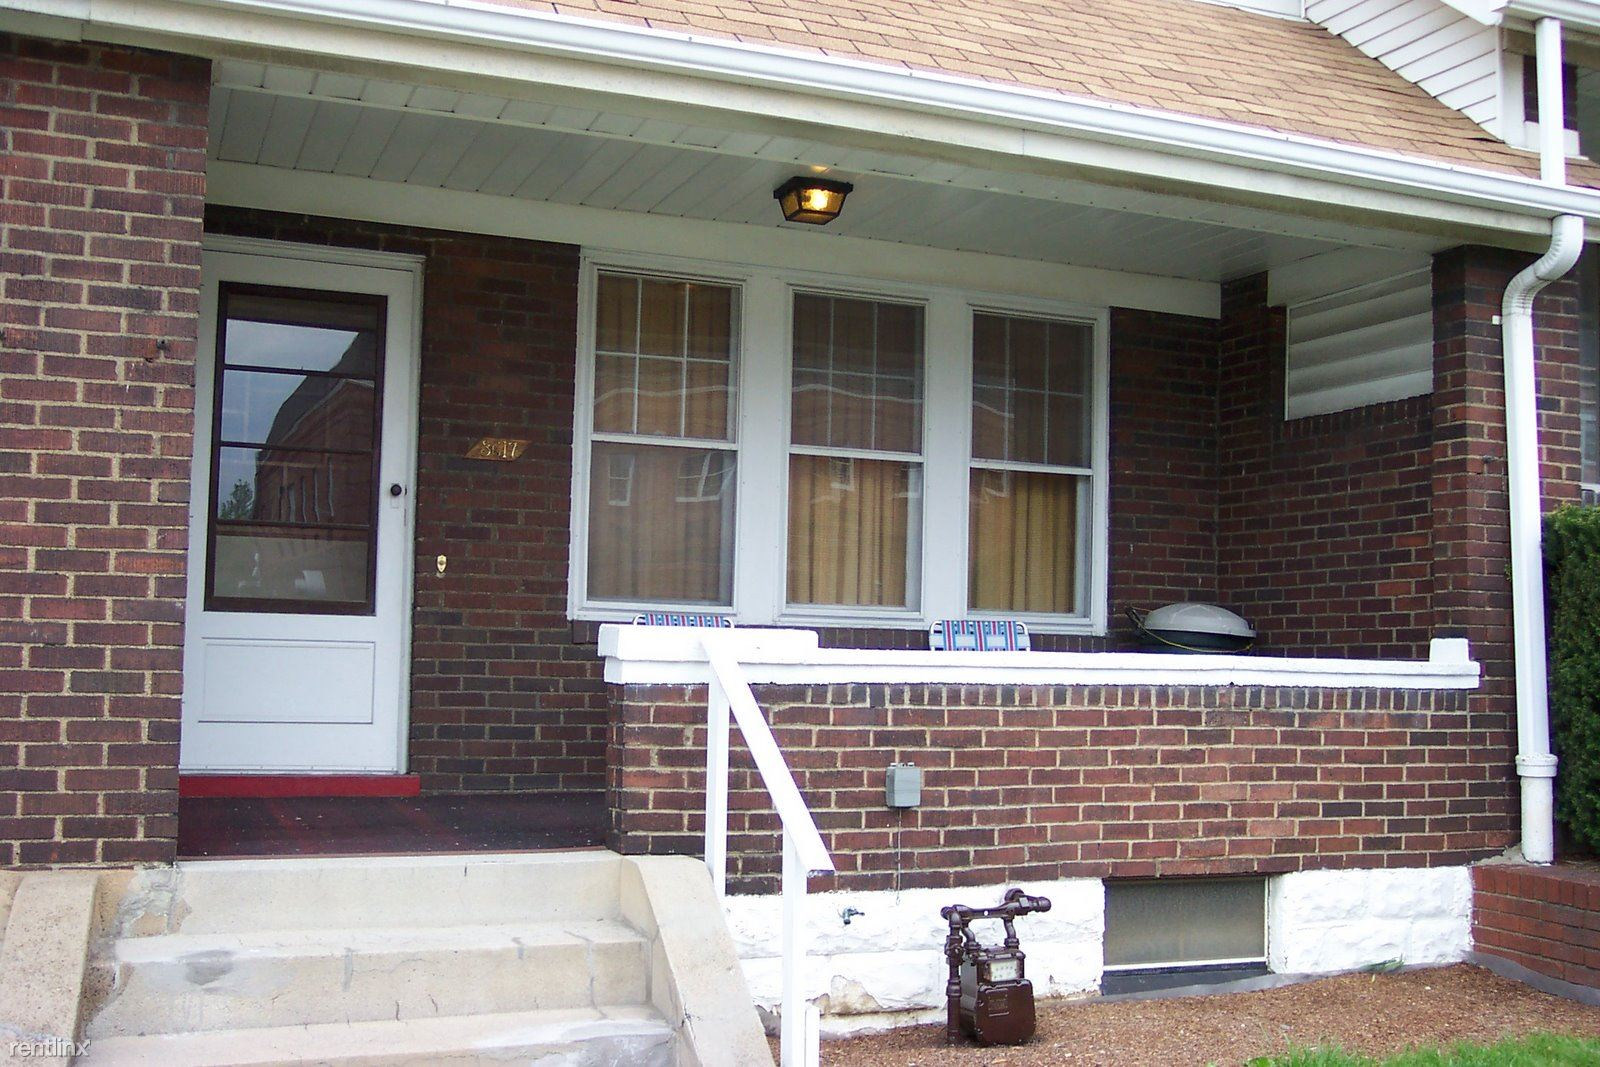 3617 Blvd of the Allies, Pittsburgh, PA - 1,999 USD/ month